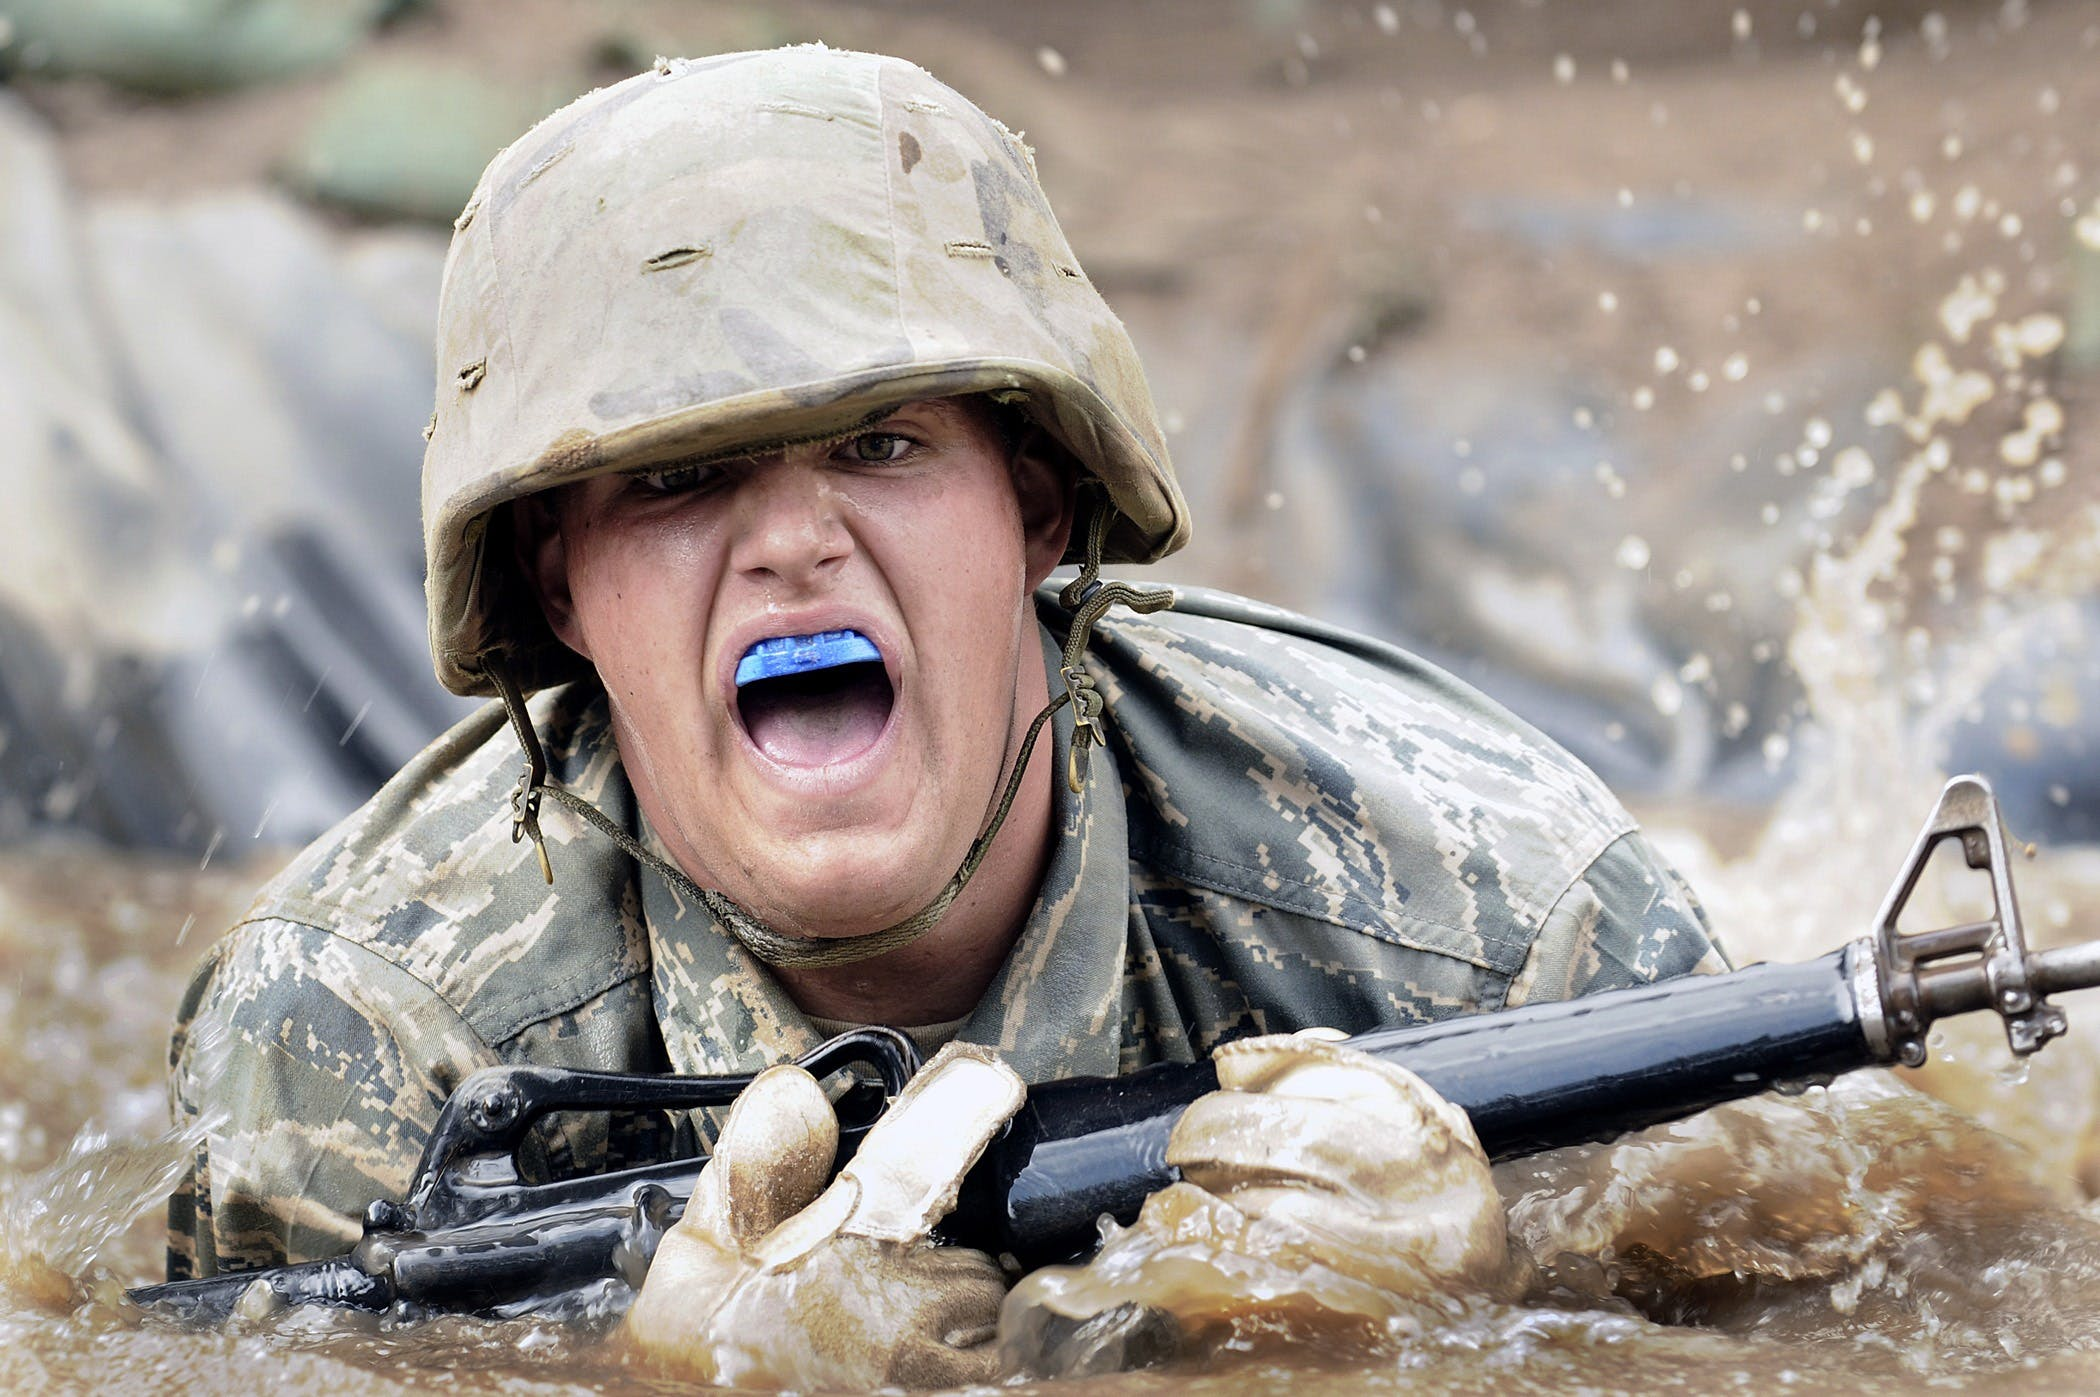 Army Holding Rifle on Water in Close-up Photography